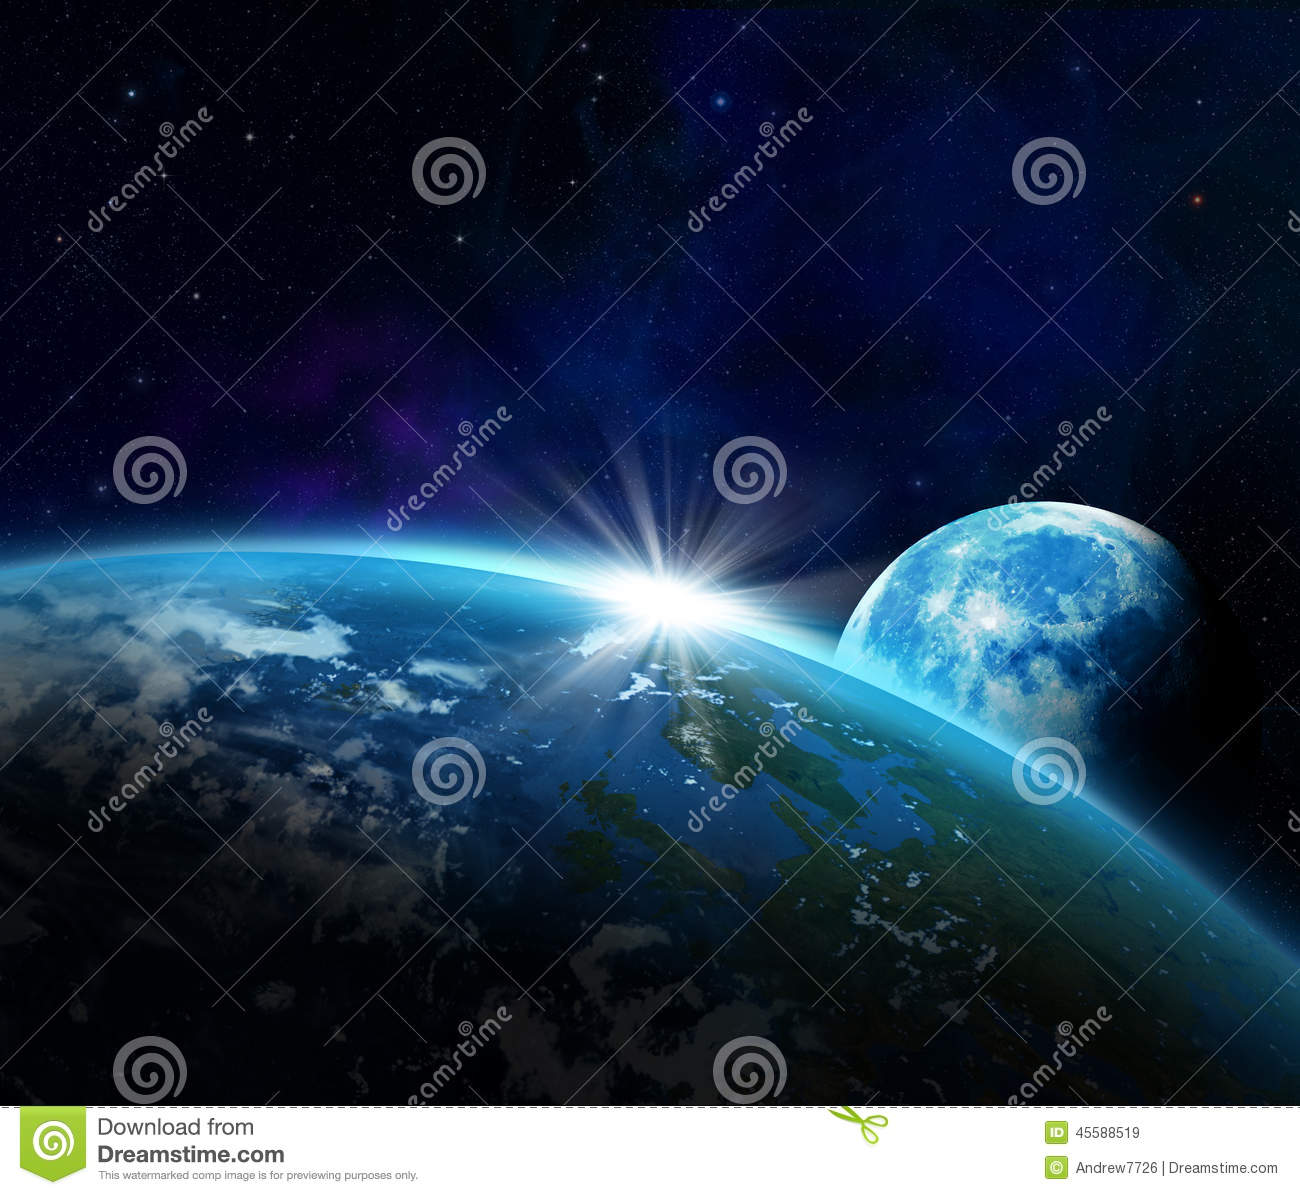 time space and context as seen The misunderstanding and conflicts that can occur from mismatches in conceptions of context, time and space can create considerable dissonance in civility, understanding and sympathy.